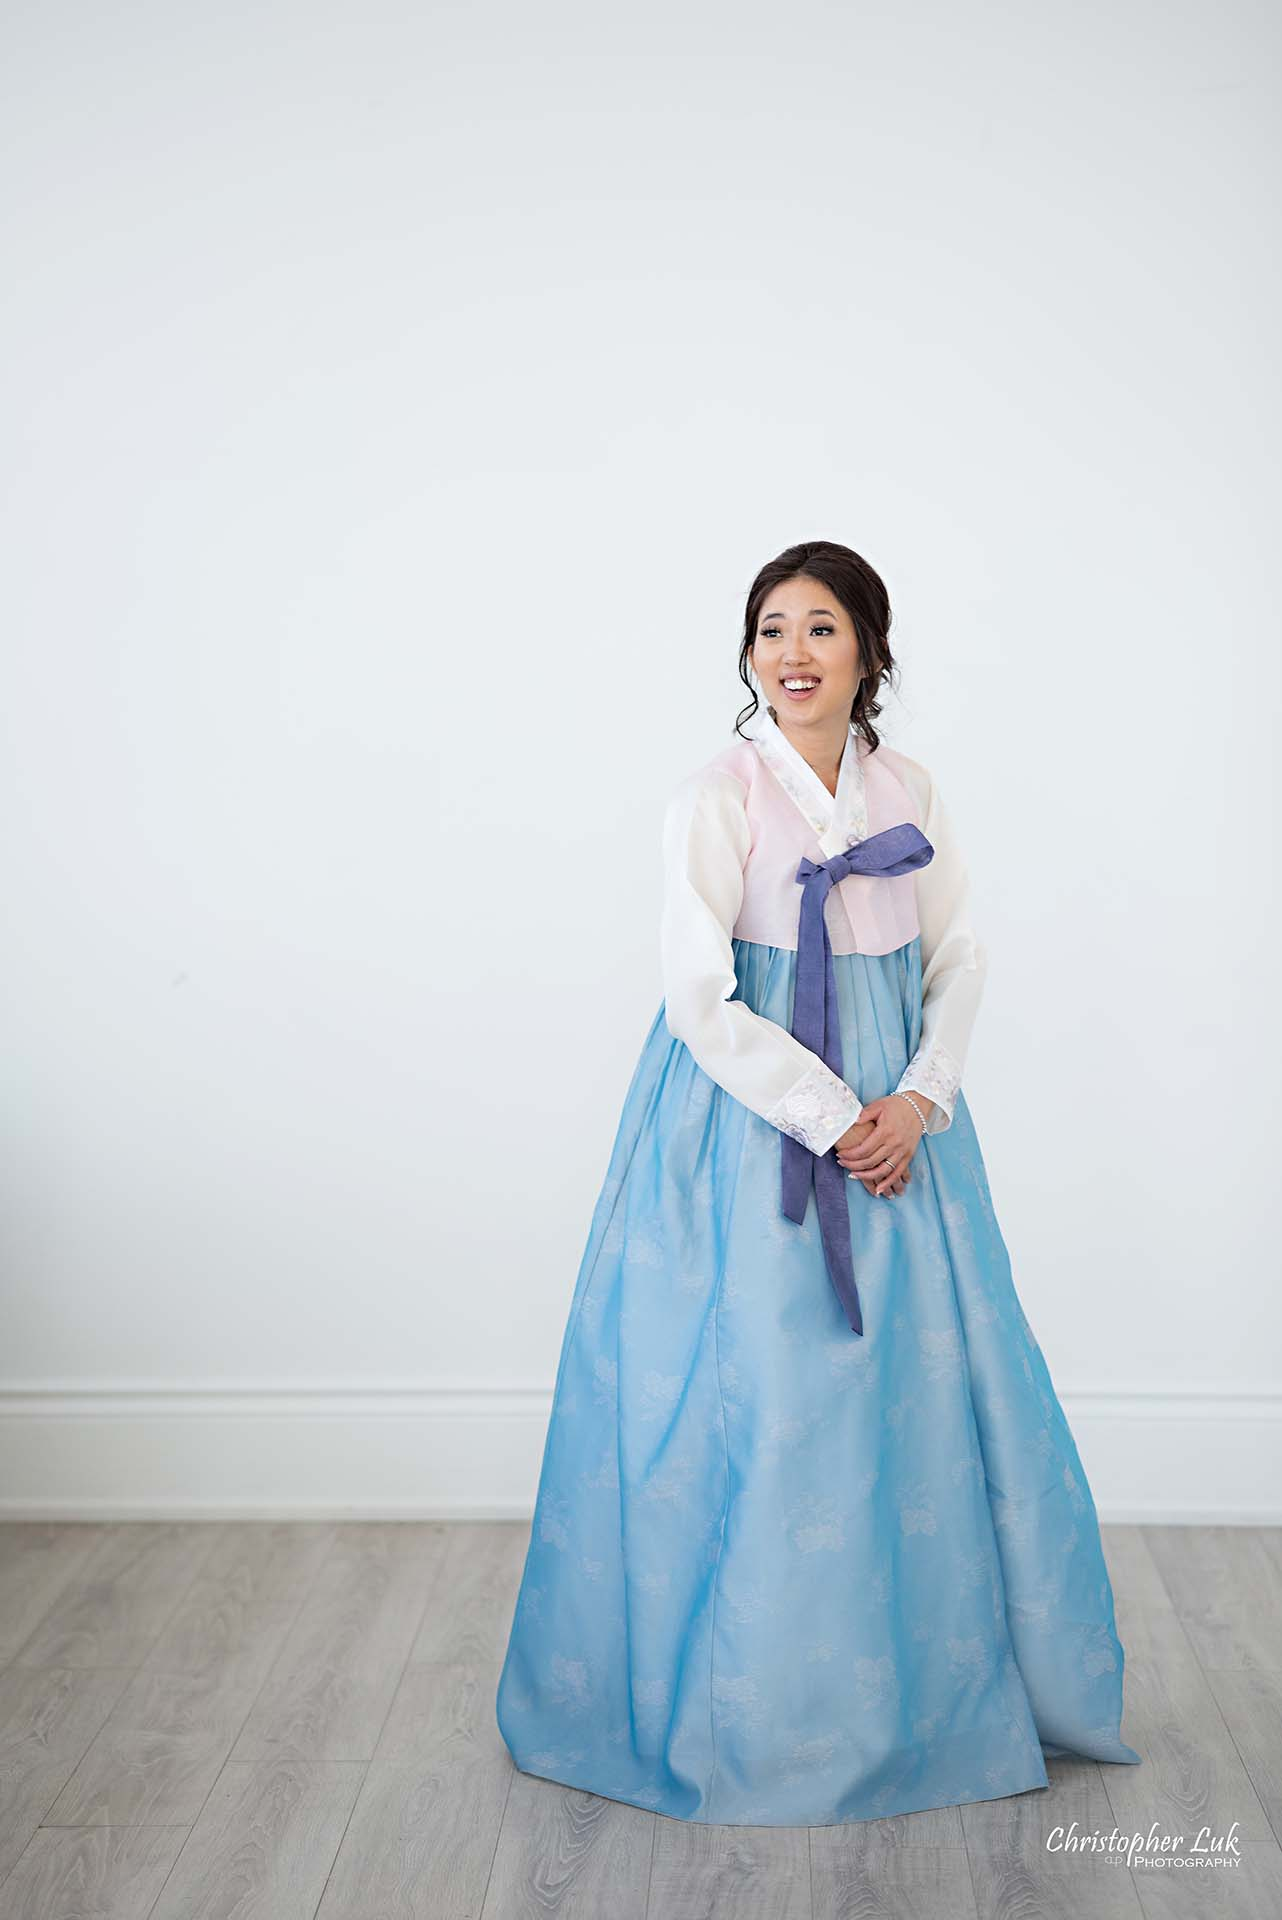 Christopher Luk Toronto Wedding Photographer - Mint Room Studios Bride Natural Candid Photojournalistic Conservatory Ballroom Korean Drama Hanbok Full Body